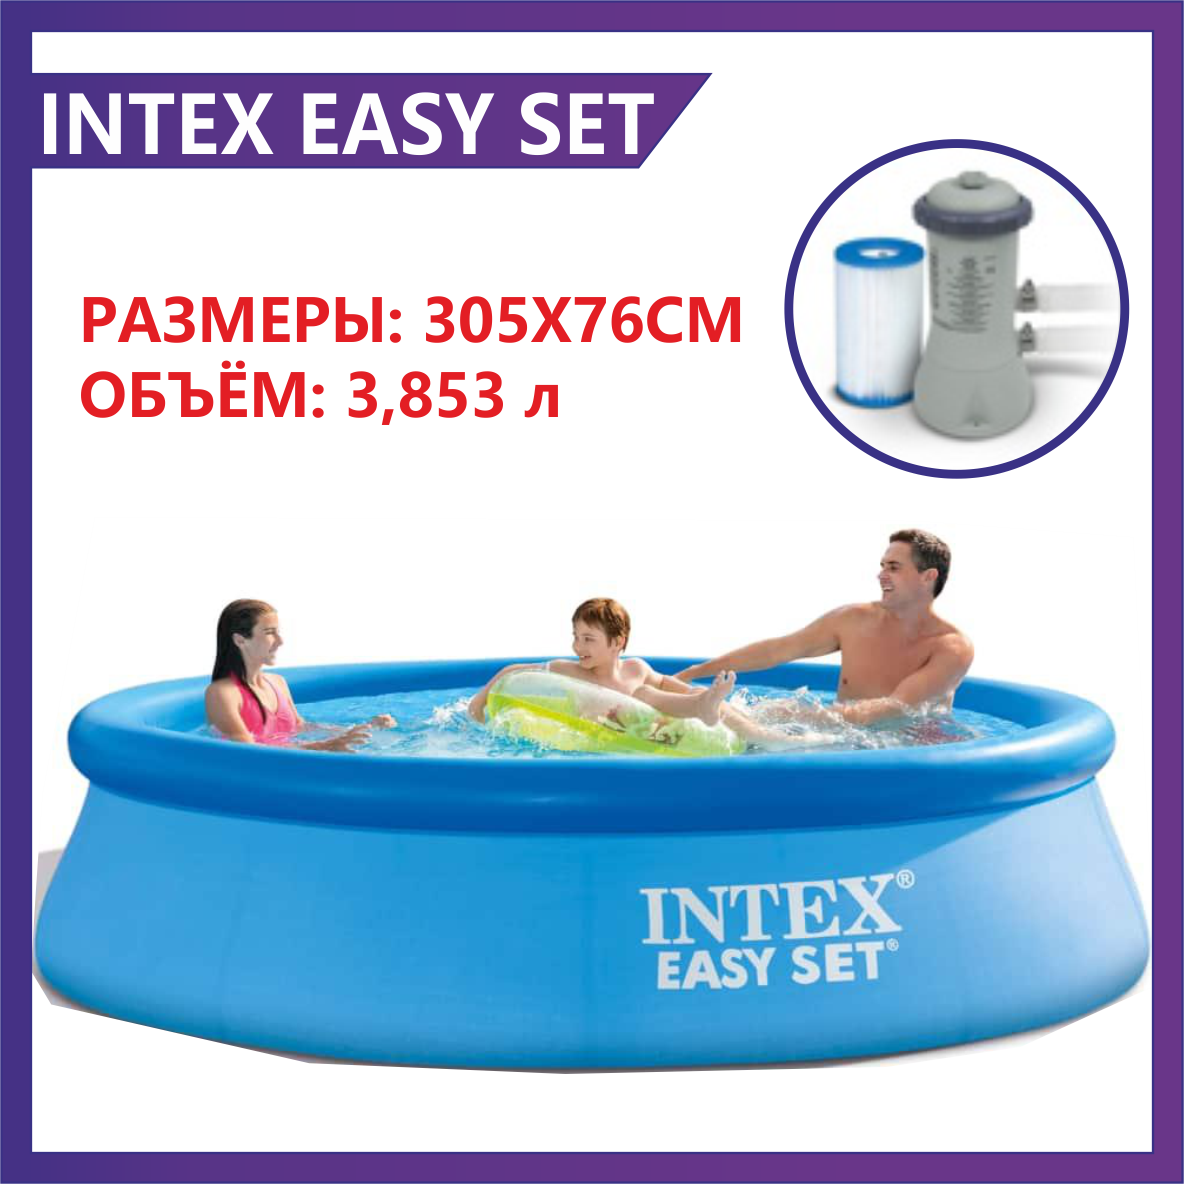 28122 БАССЕЙН INTEX EASY SET, 305Х76СМ